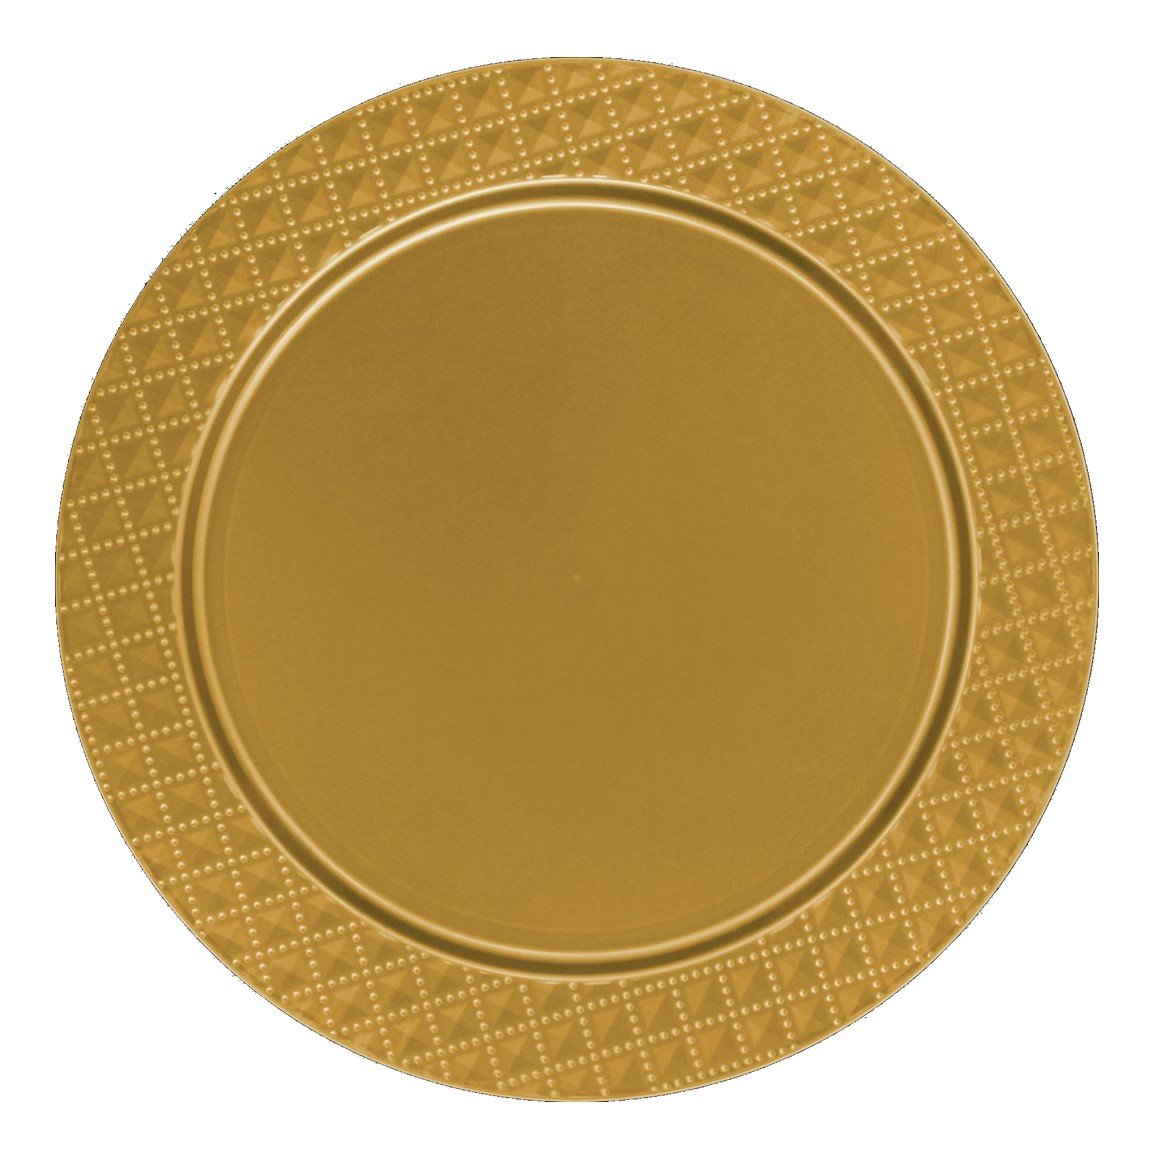 Posh Setting Gold Charger Plates, Diamond Design, Medium Weight 13 inch, Round Plastic Chargers 10 pack